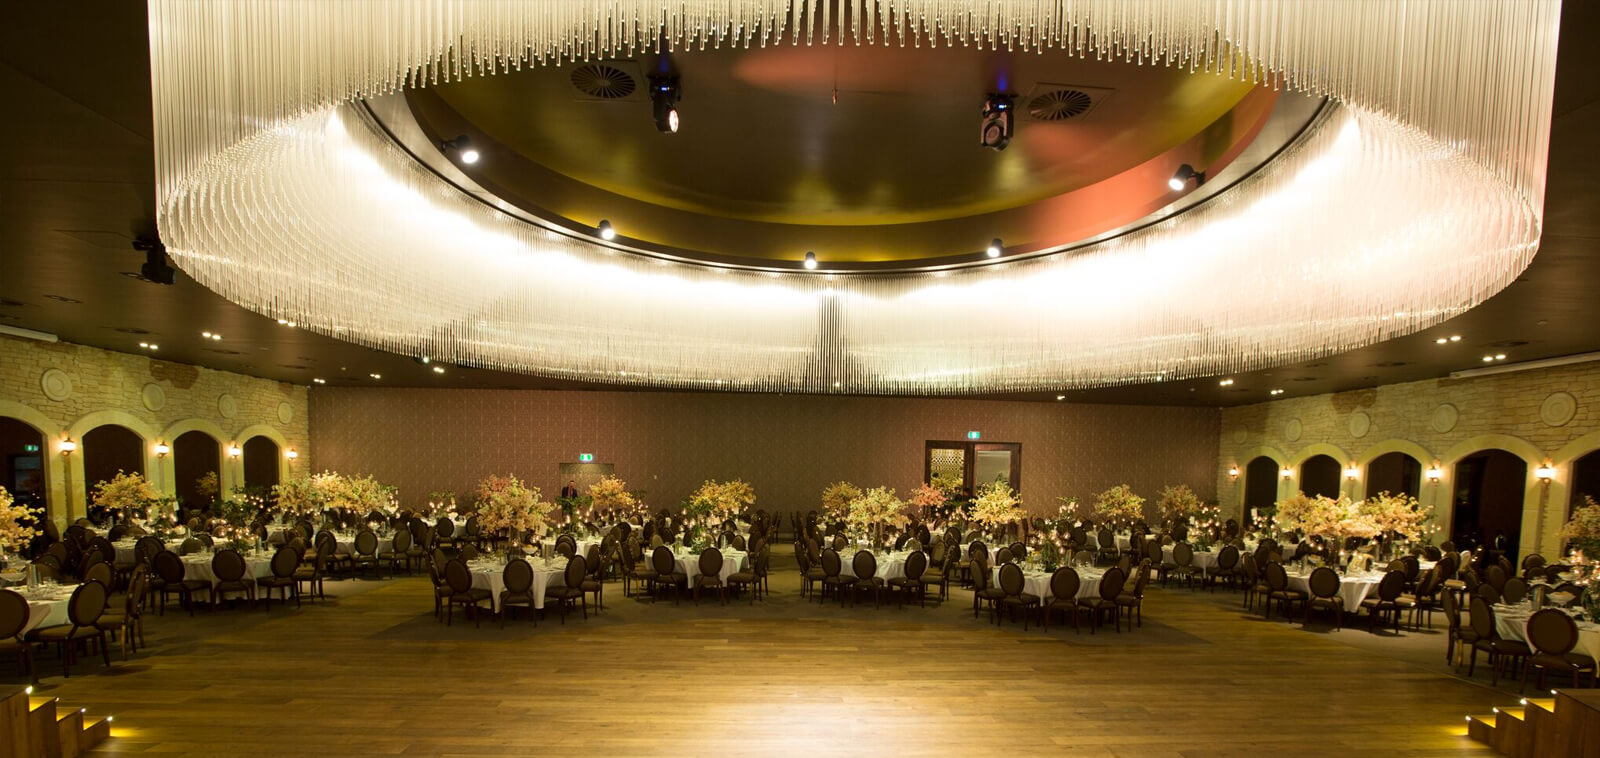 Best-Engagement-Venues-to-Book-in-Sydney-Clarence-house-Australia